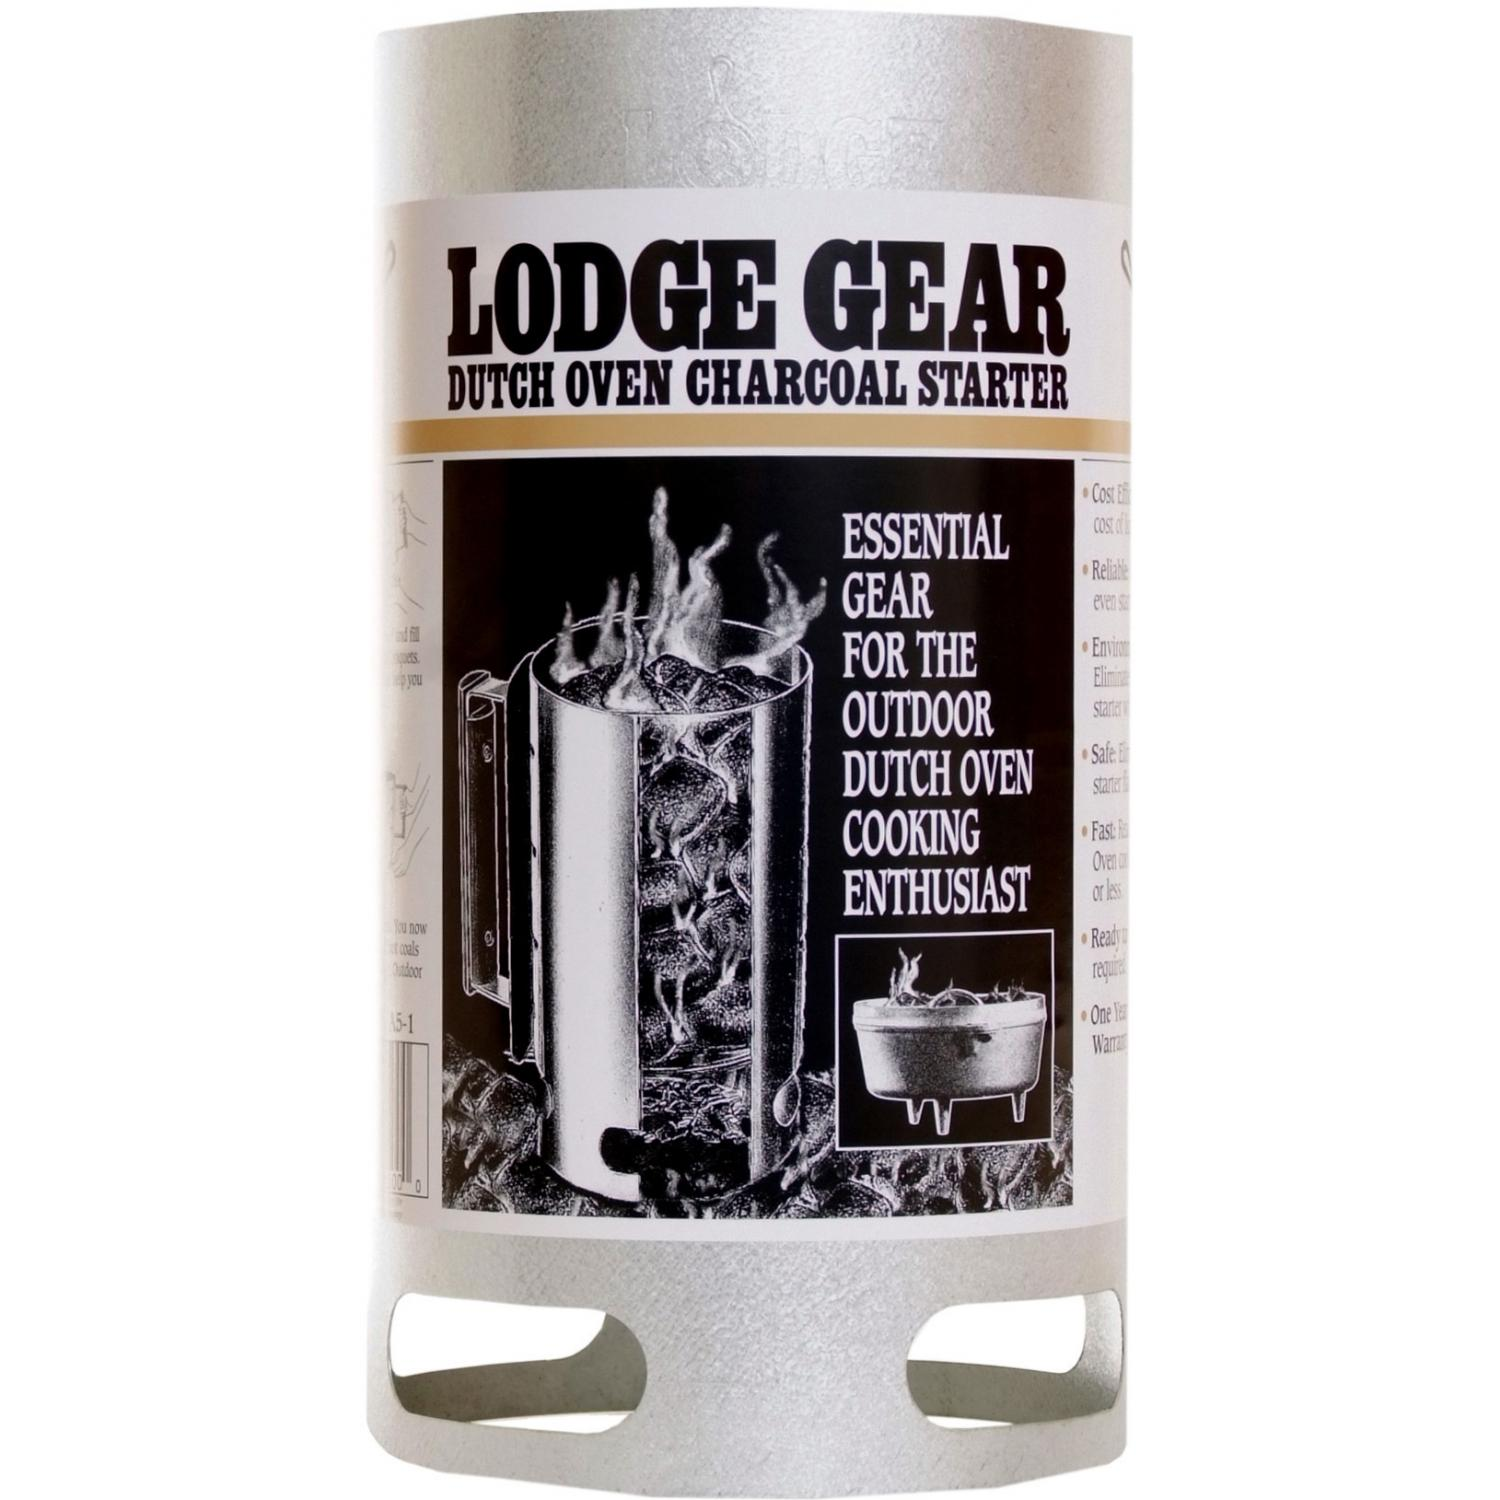 Lodge Camping Dutch Oven Charcoal Chimney Starter - A5-1